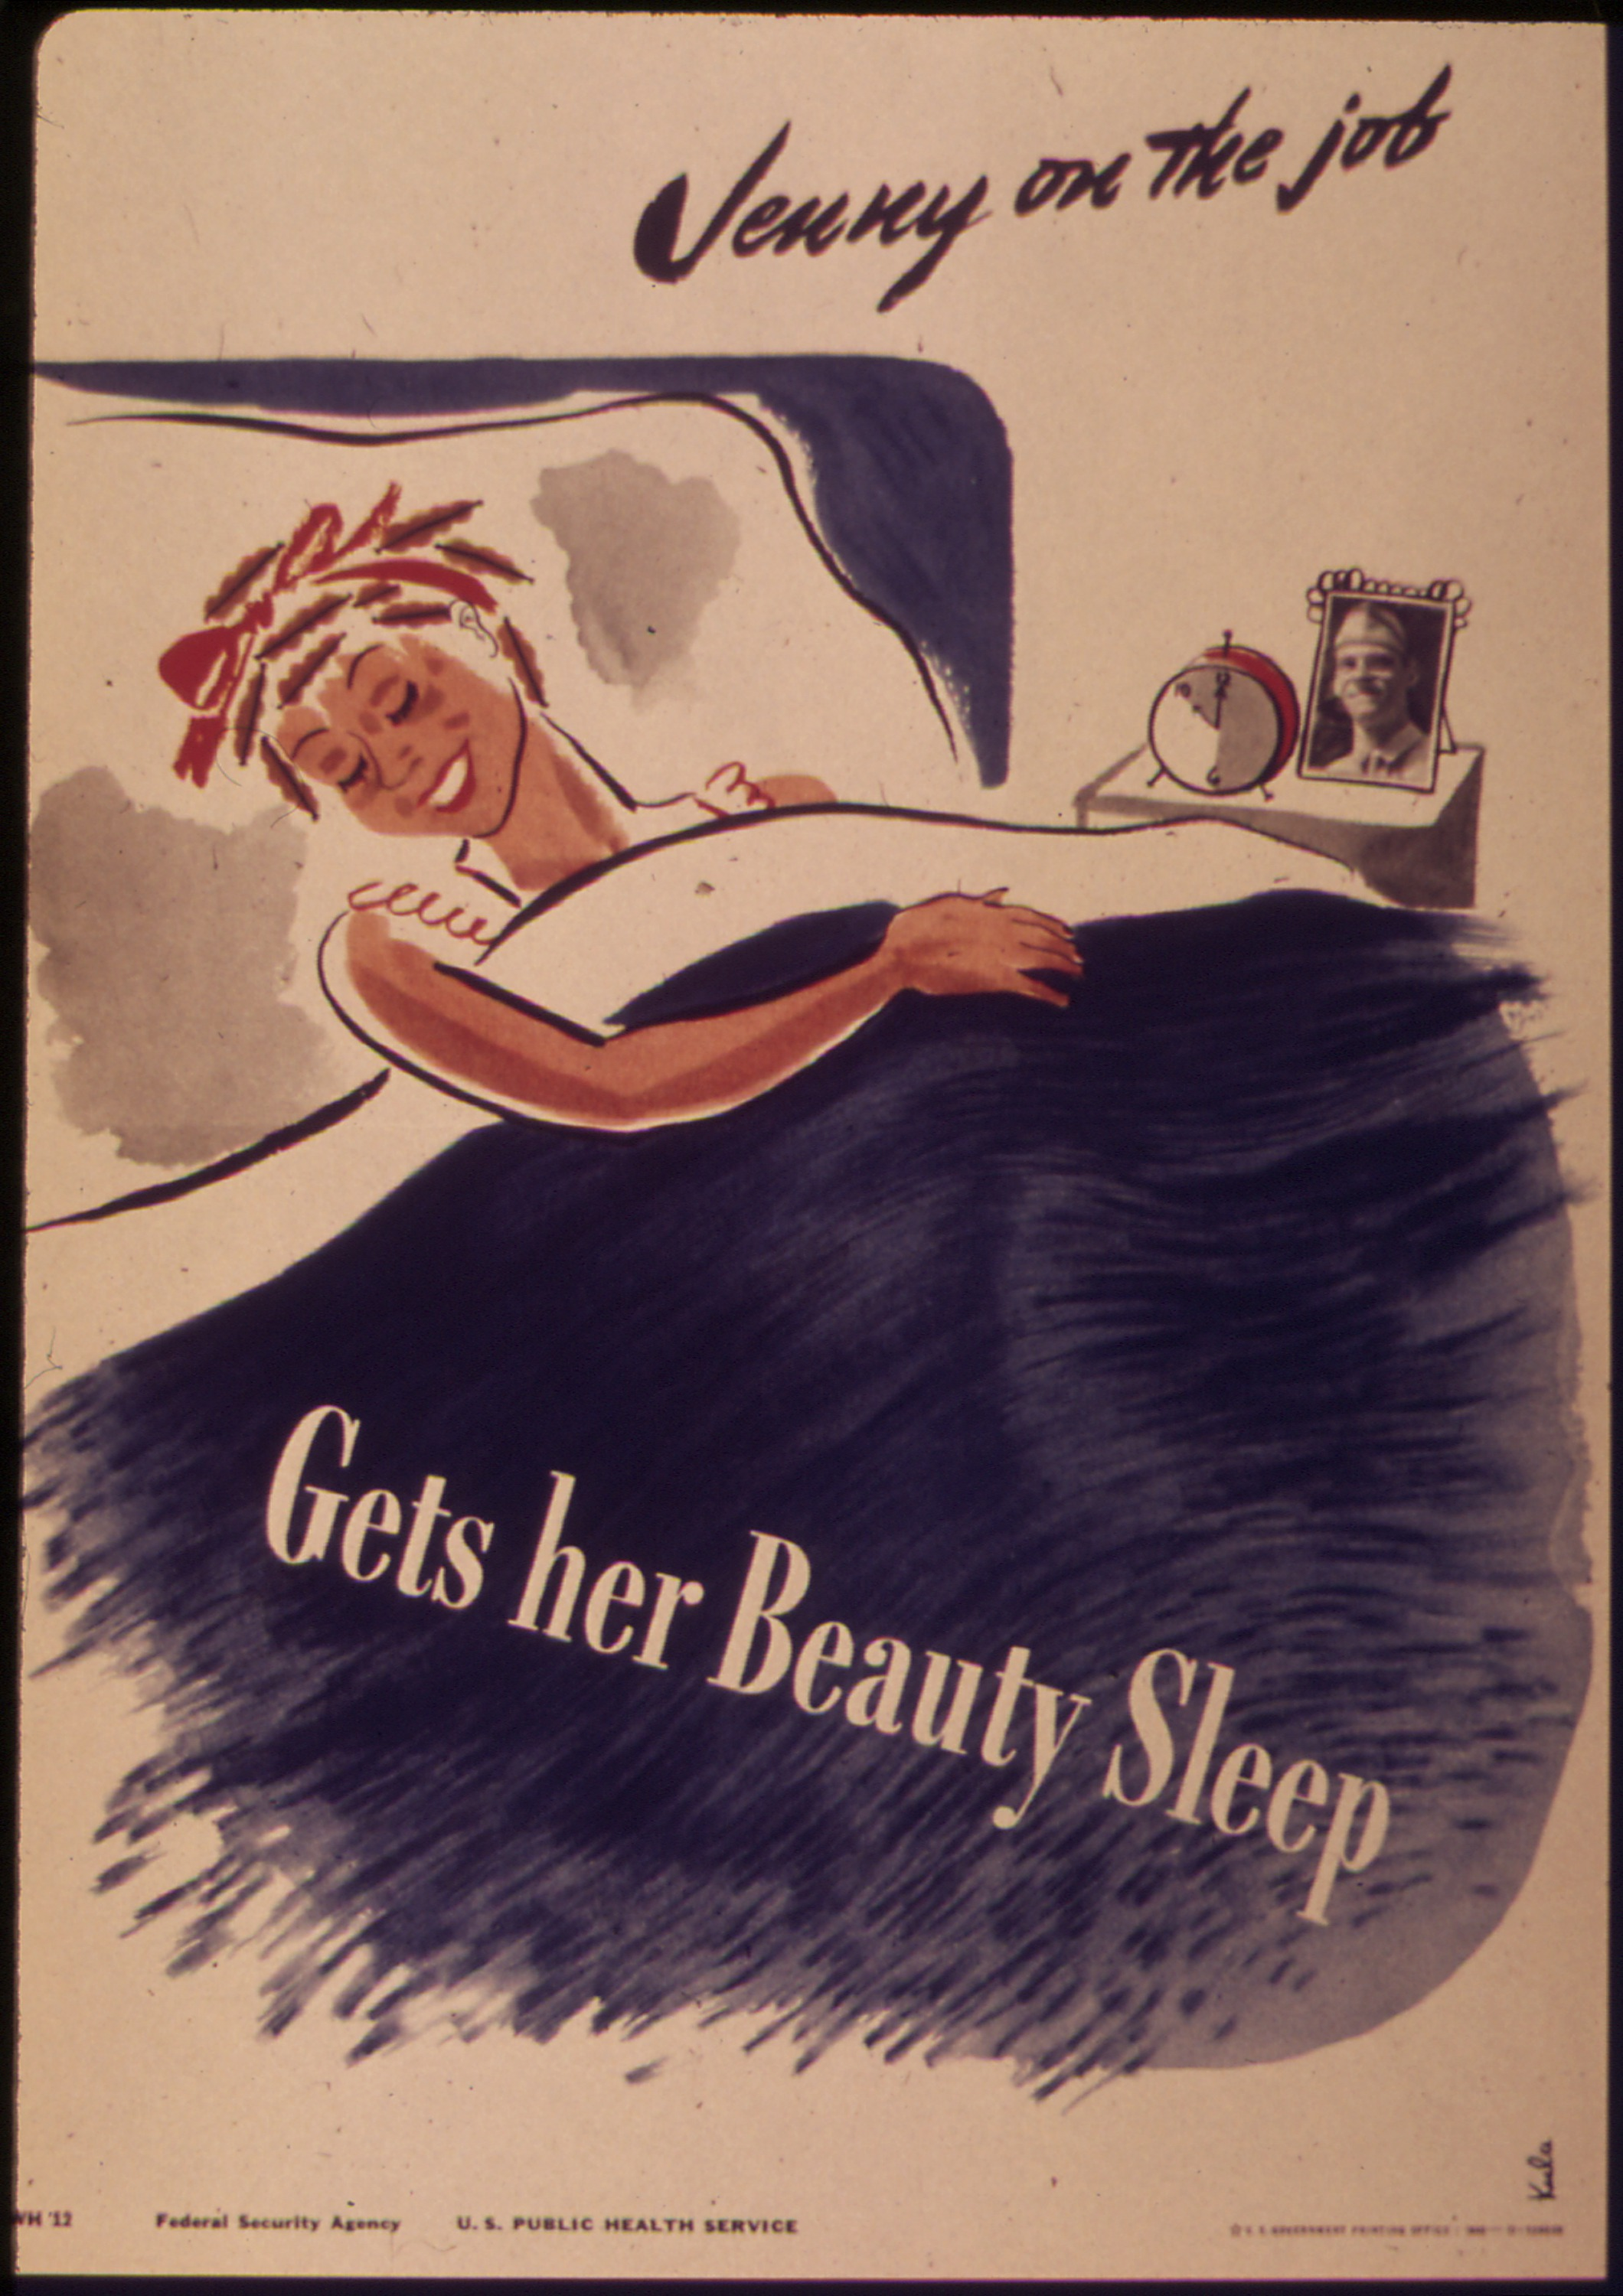 Jenny on the job gets her beauty sleep - Zeichnung, Quelle: WikiCommons, siehe Artikel unten